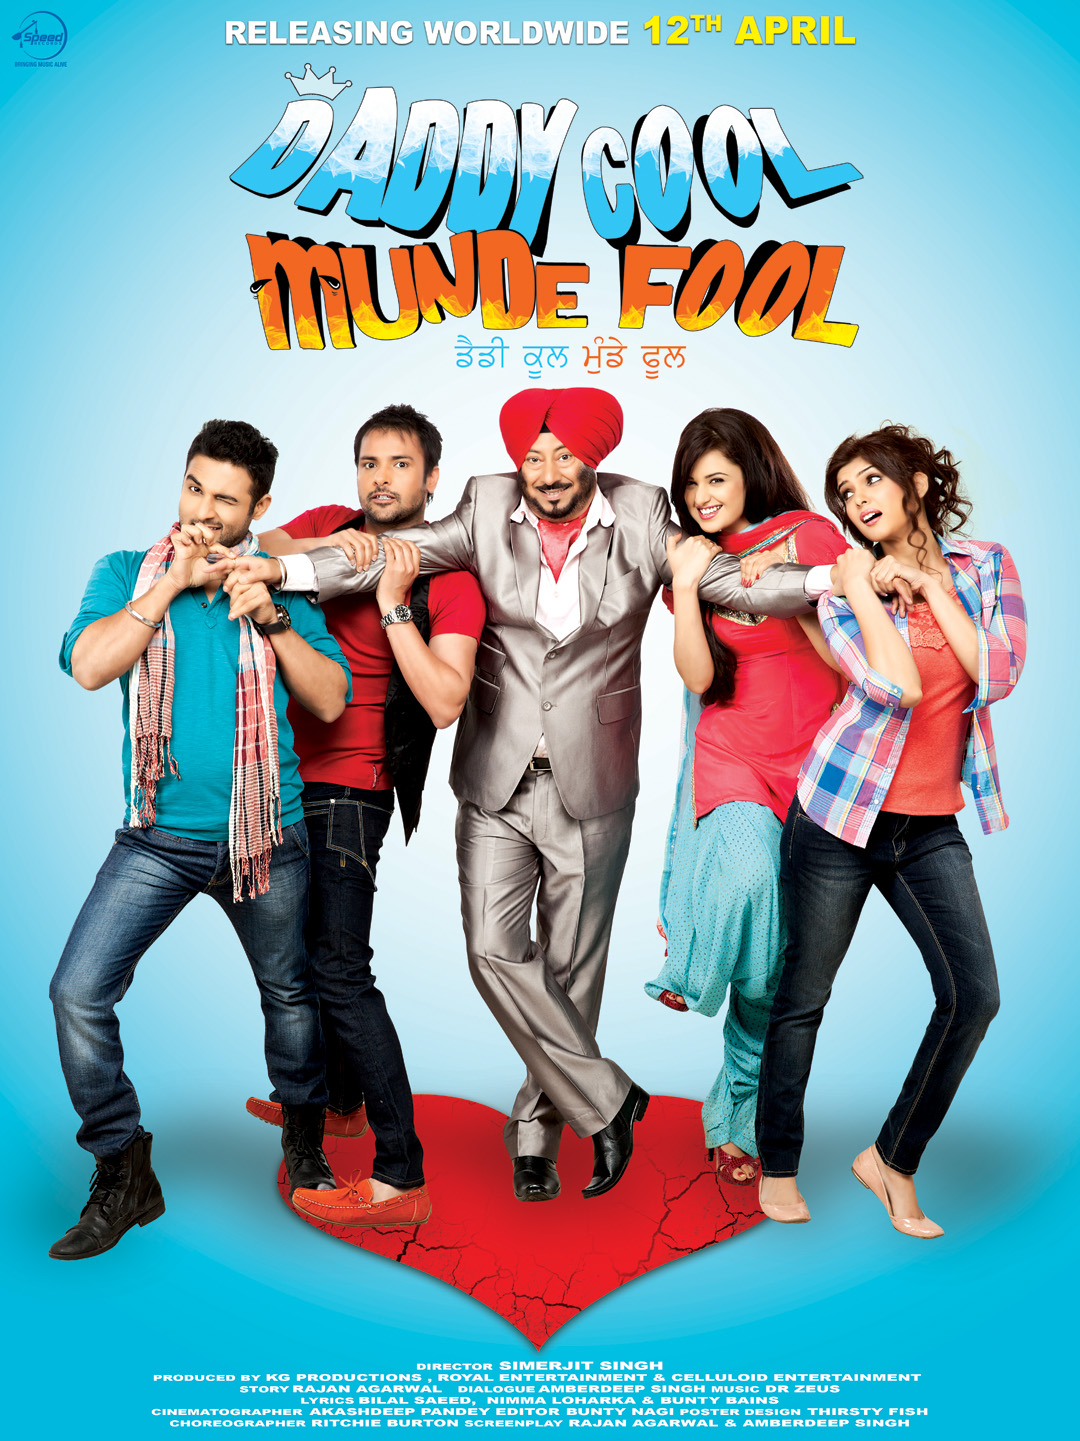 Daddy Cool Munde Fool (2013) DVD Releases